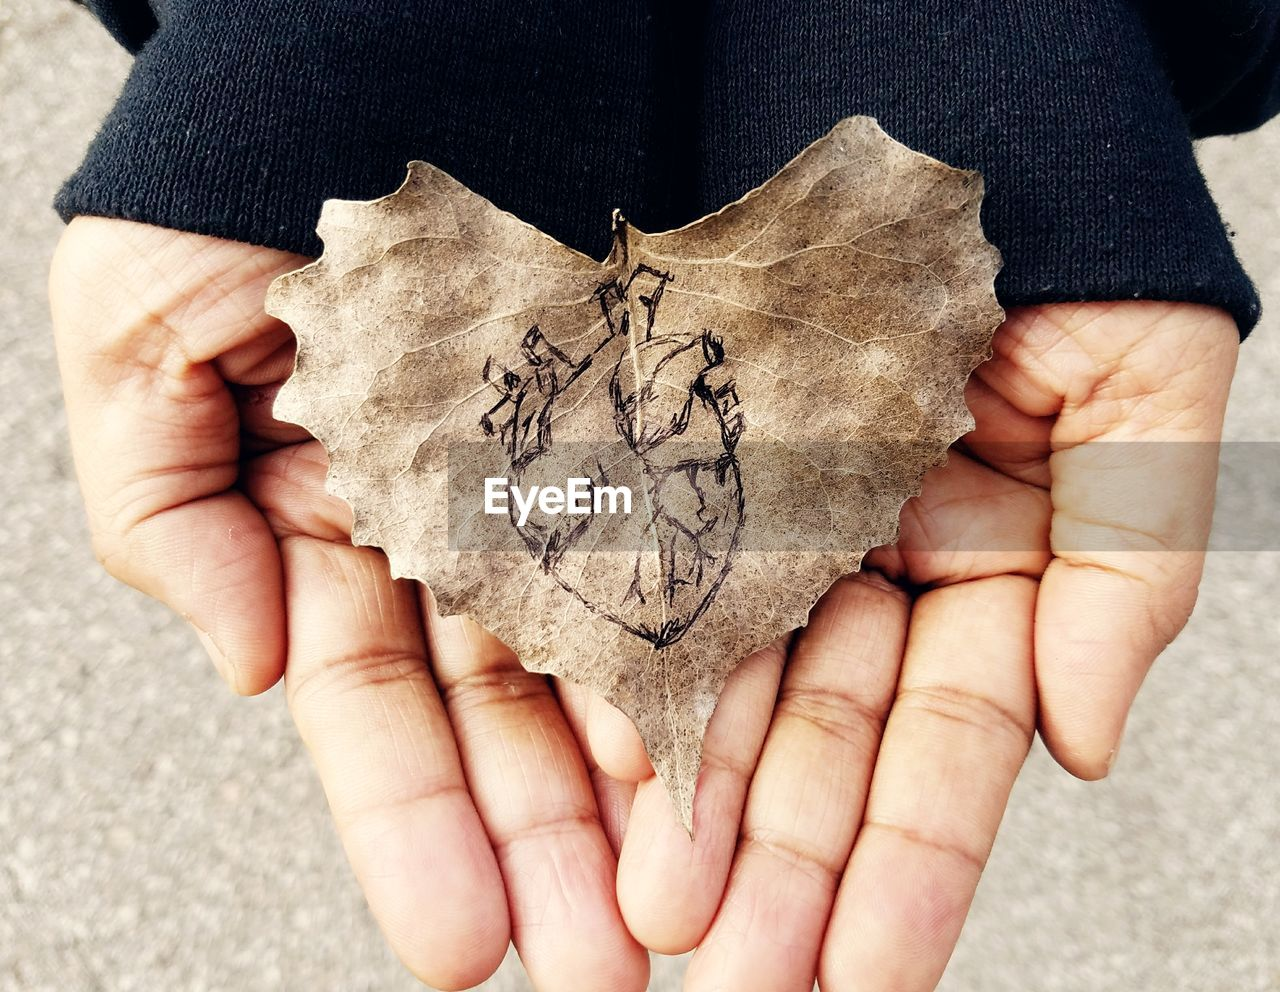 Cropped Hands Of Person Holding Leaf With Human Heart Sketch On It